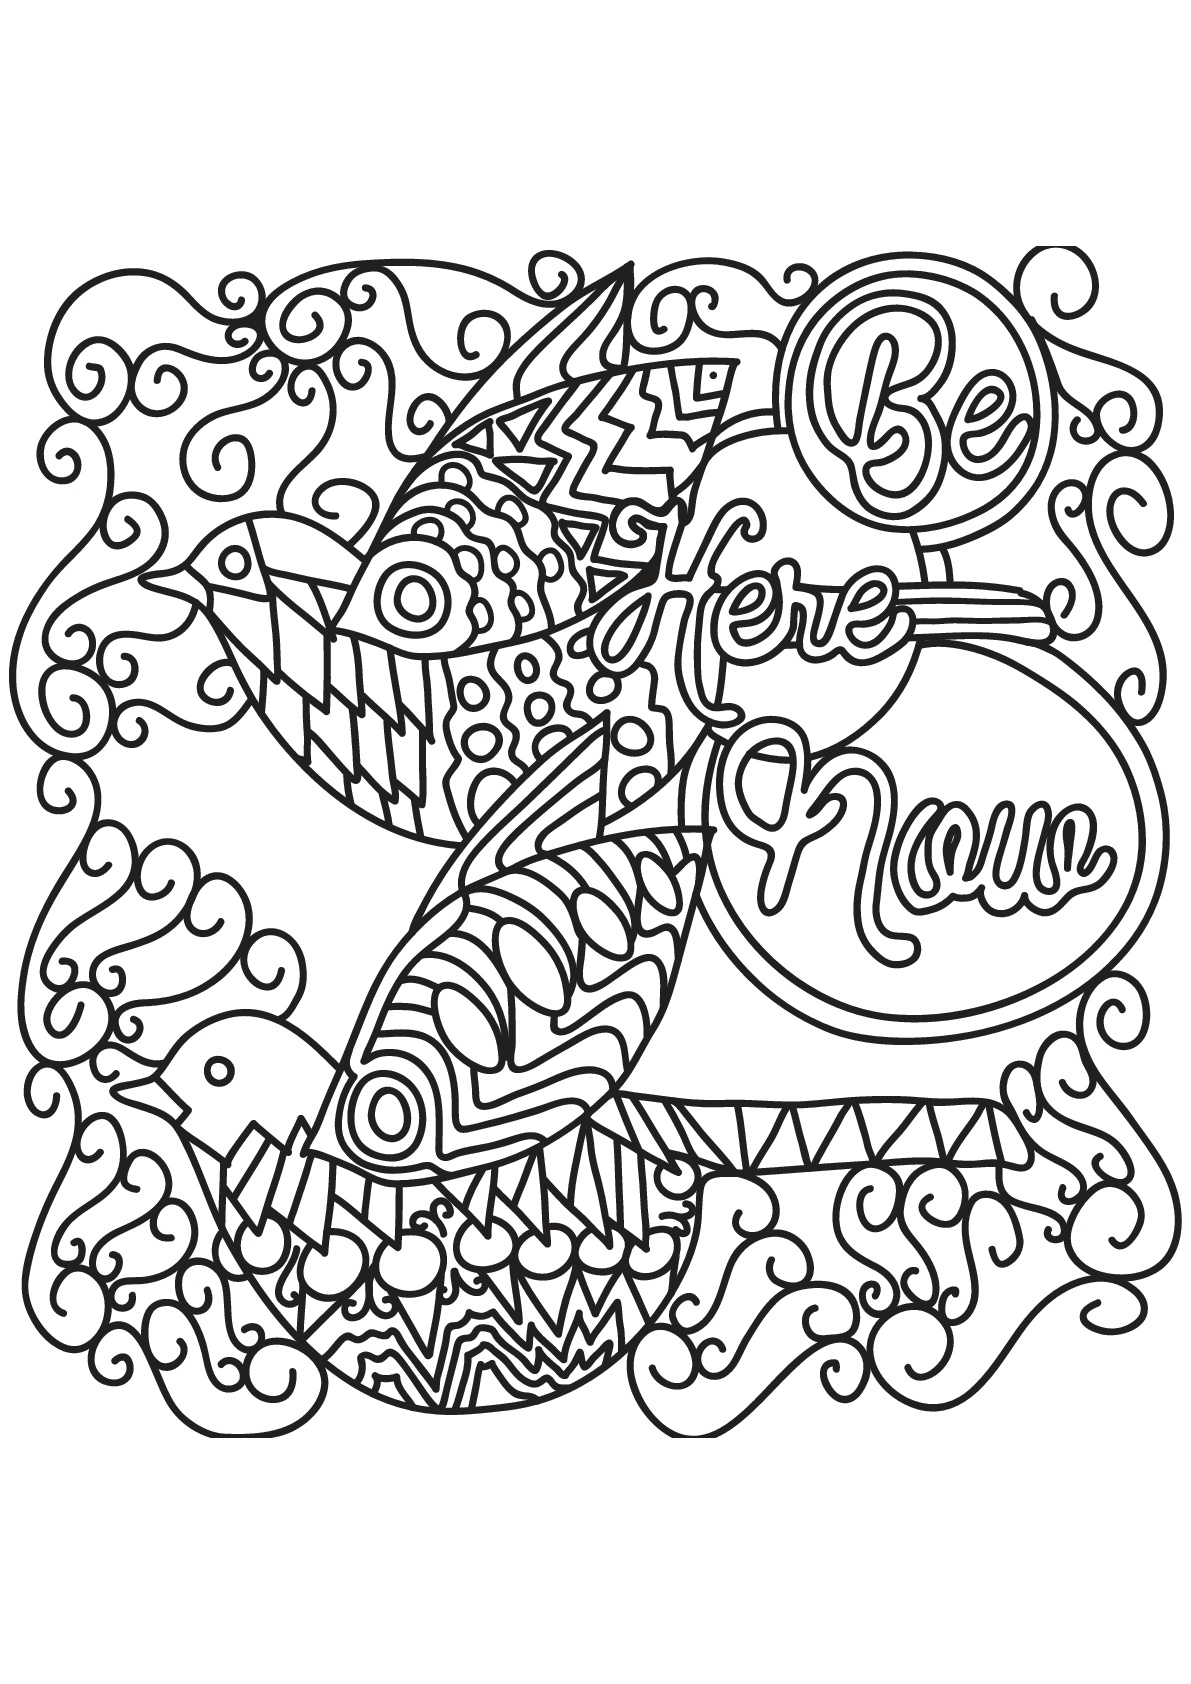 free book quote 16 quotes adult coloring pages. Black Bedroom Furniture Sets. Home Design Ideas